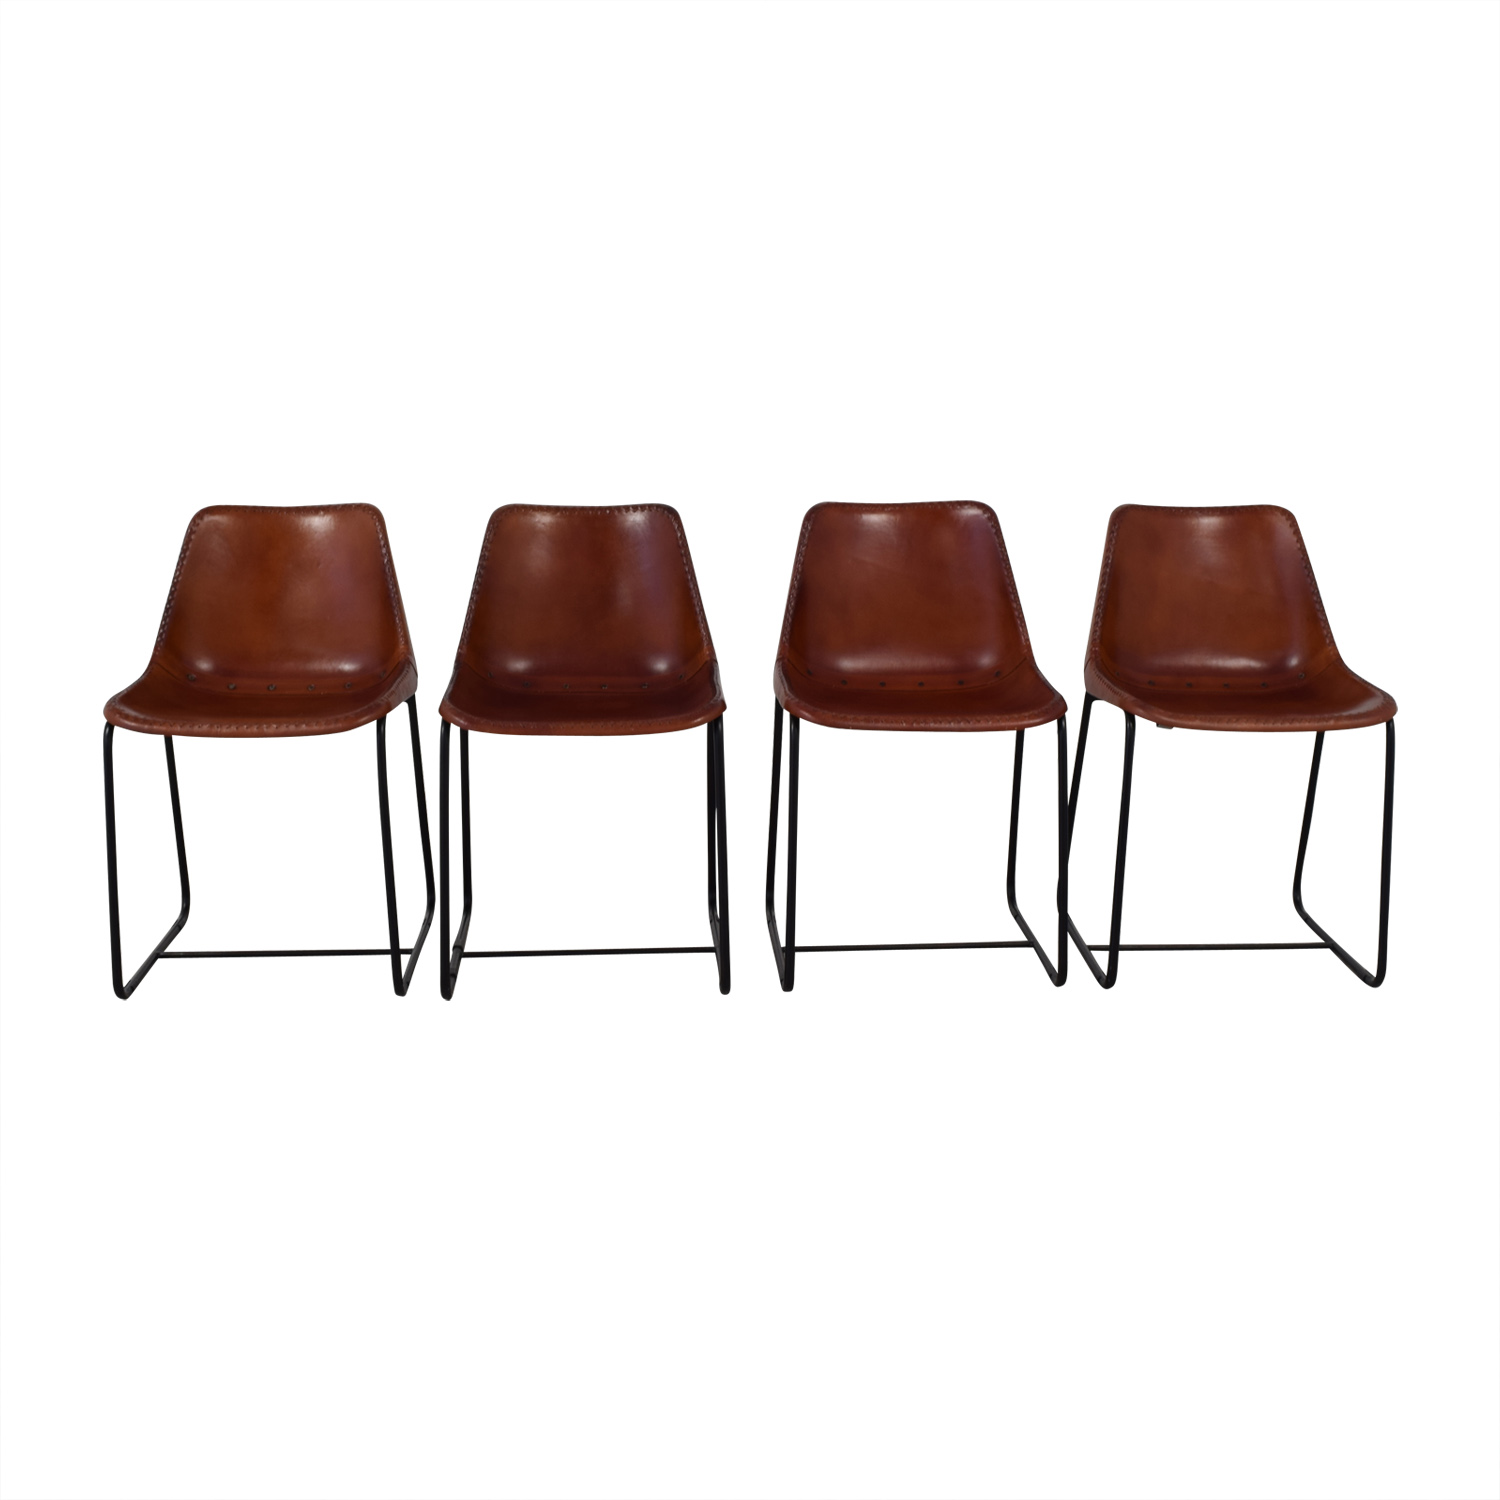 54% OFF   CB2 CB2 Roadhouse Leather Chairs / Chairs